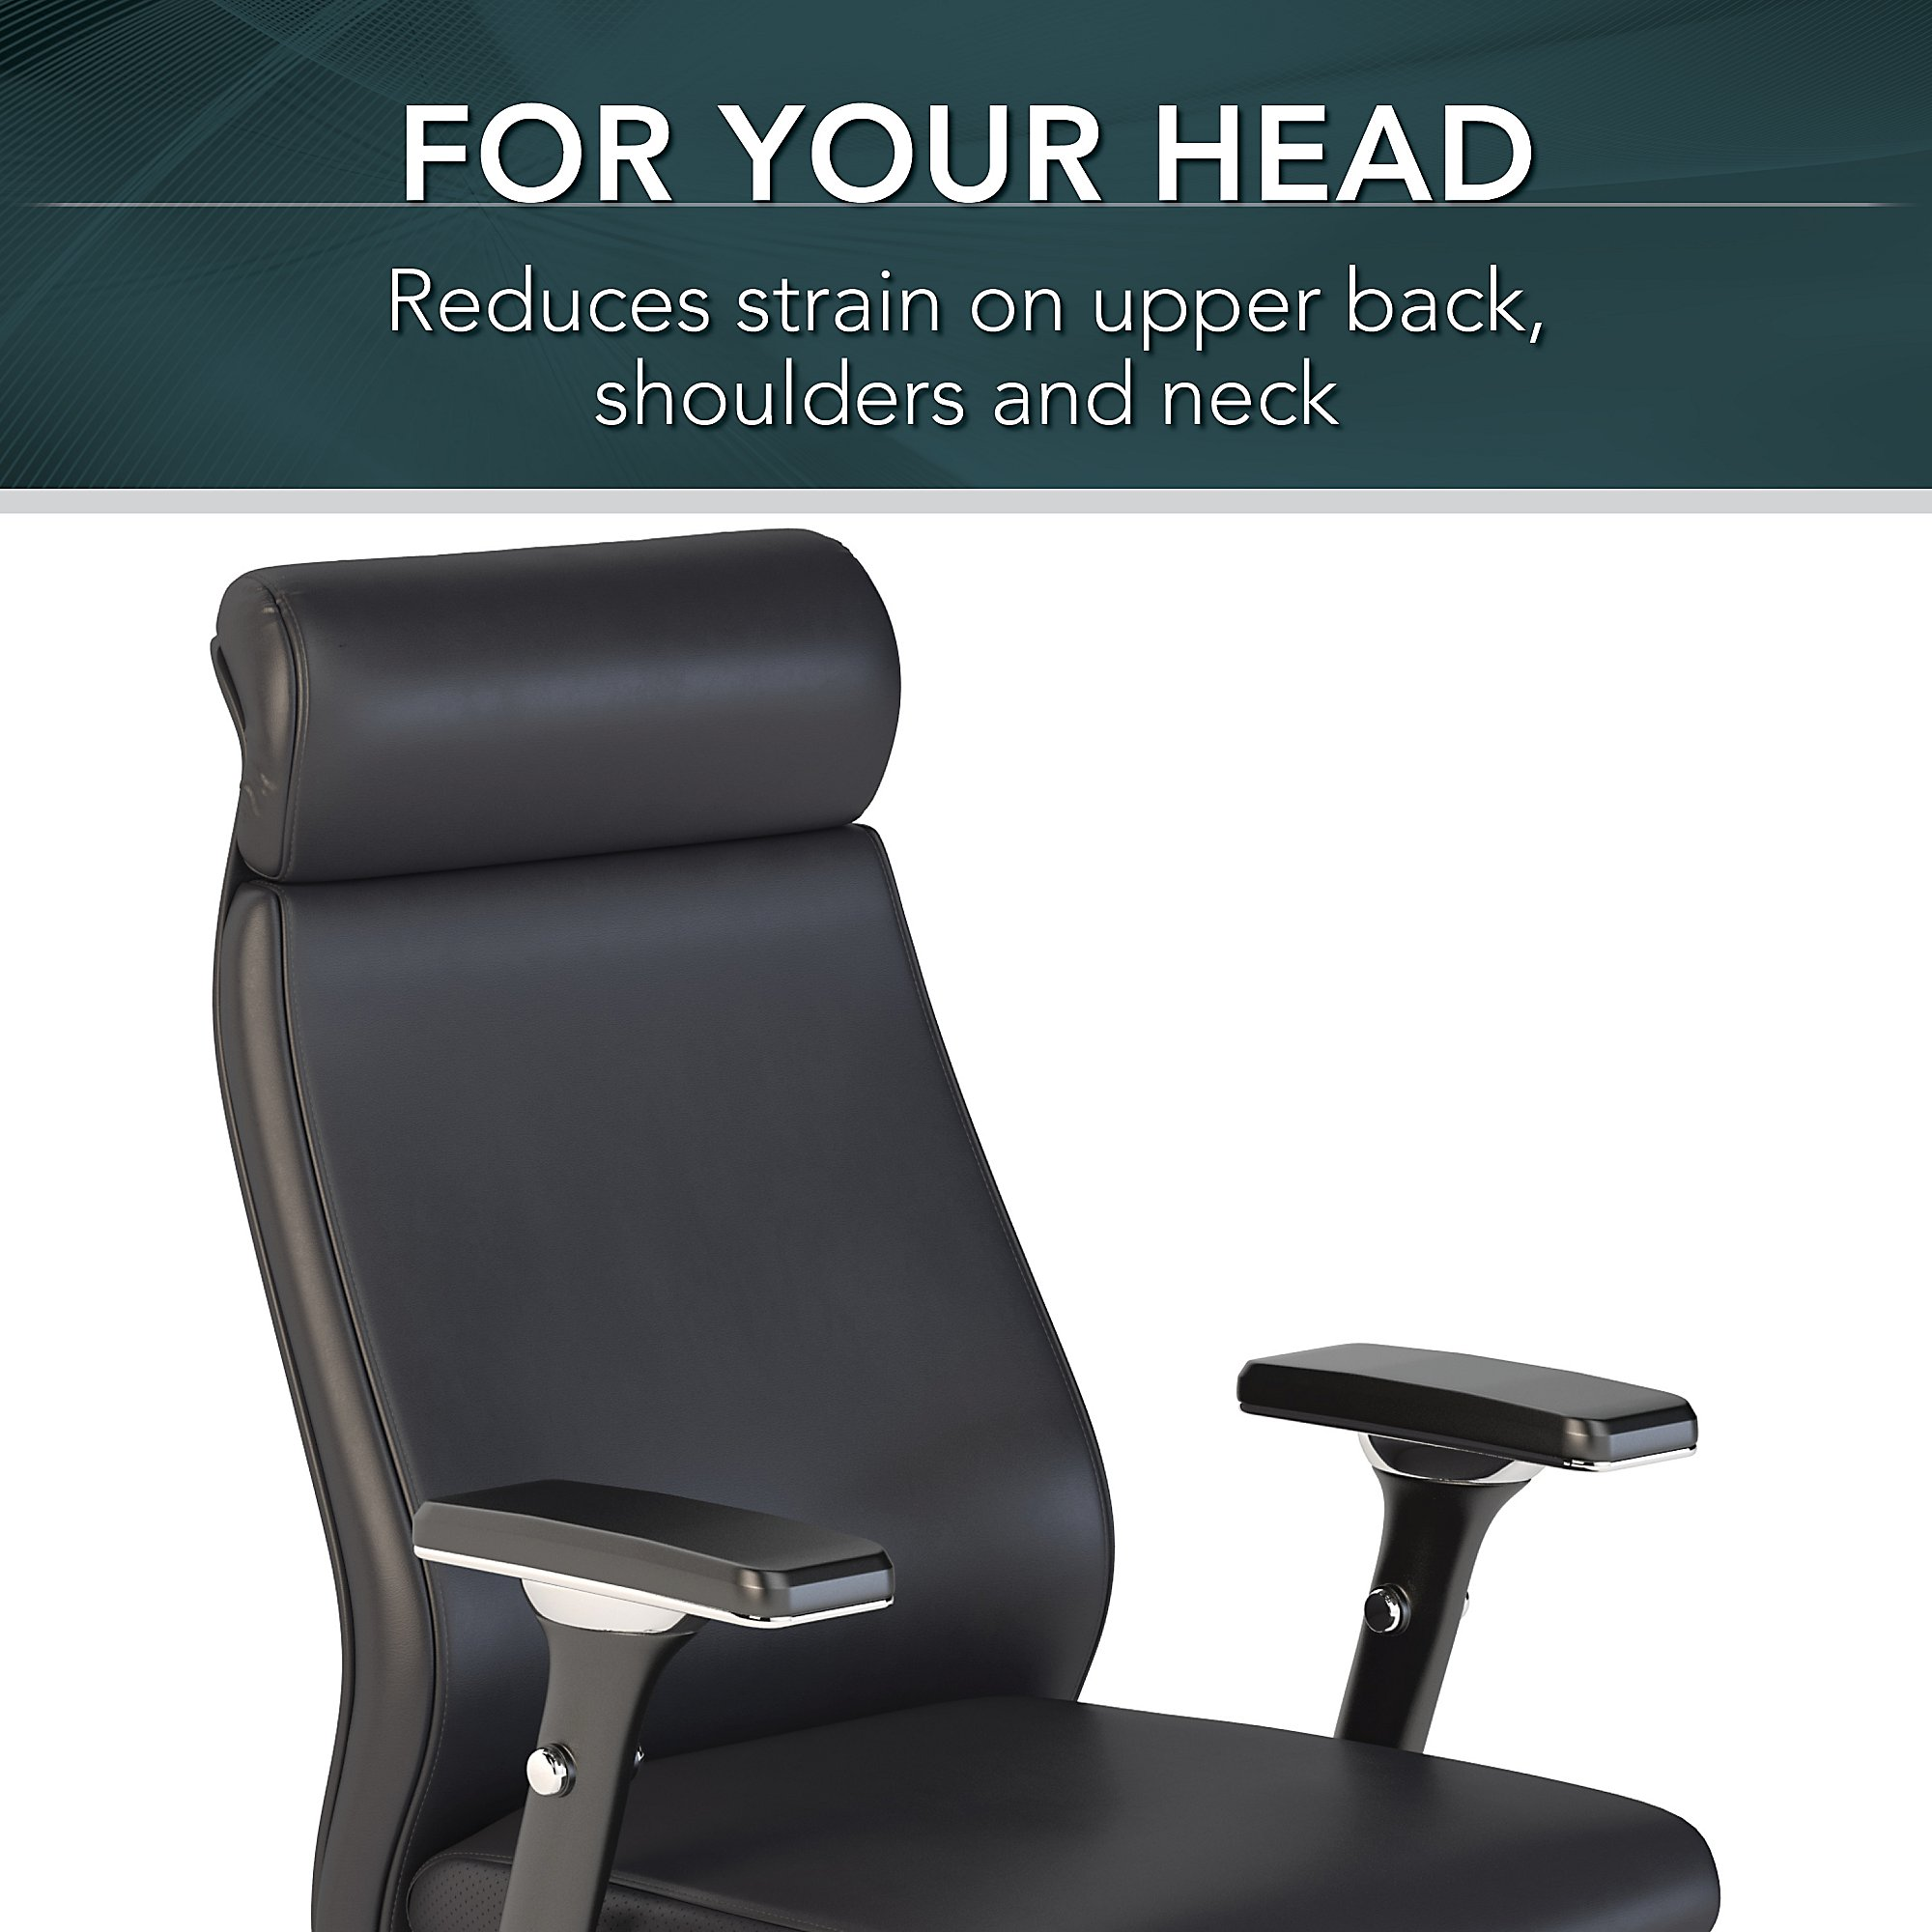 bbf office chair features